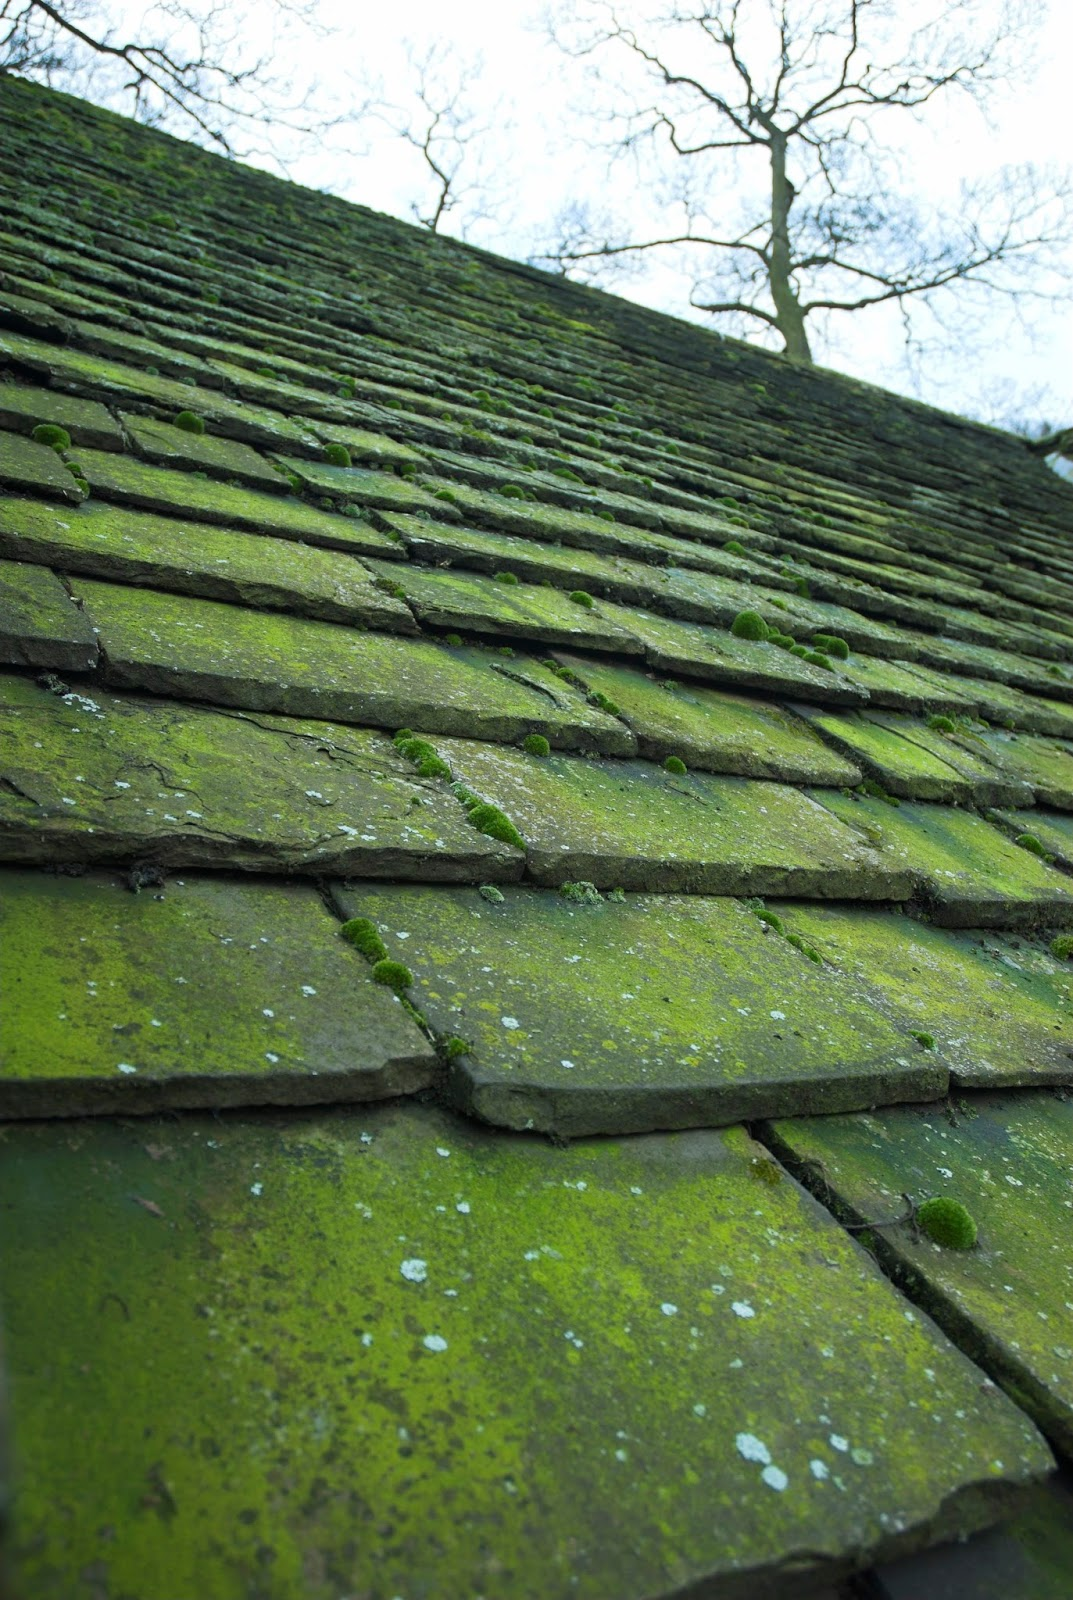 Phil S Main Roofing How To Get Rid Of Roof Moss